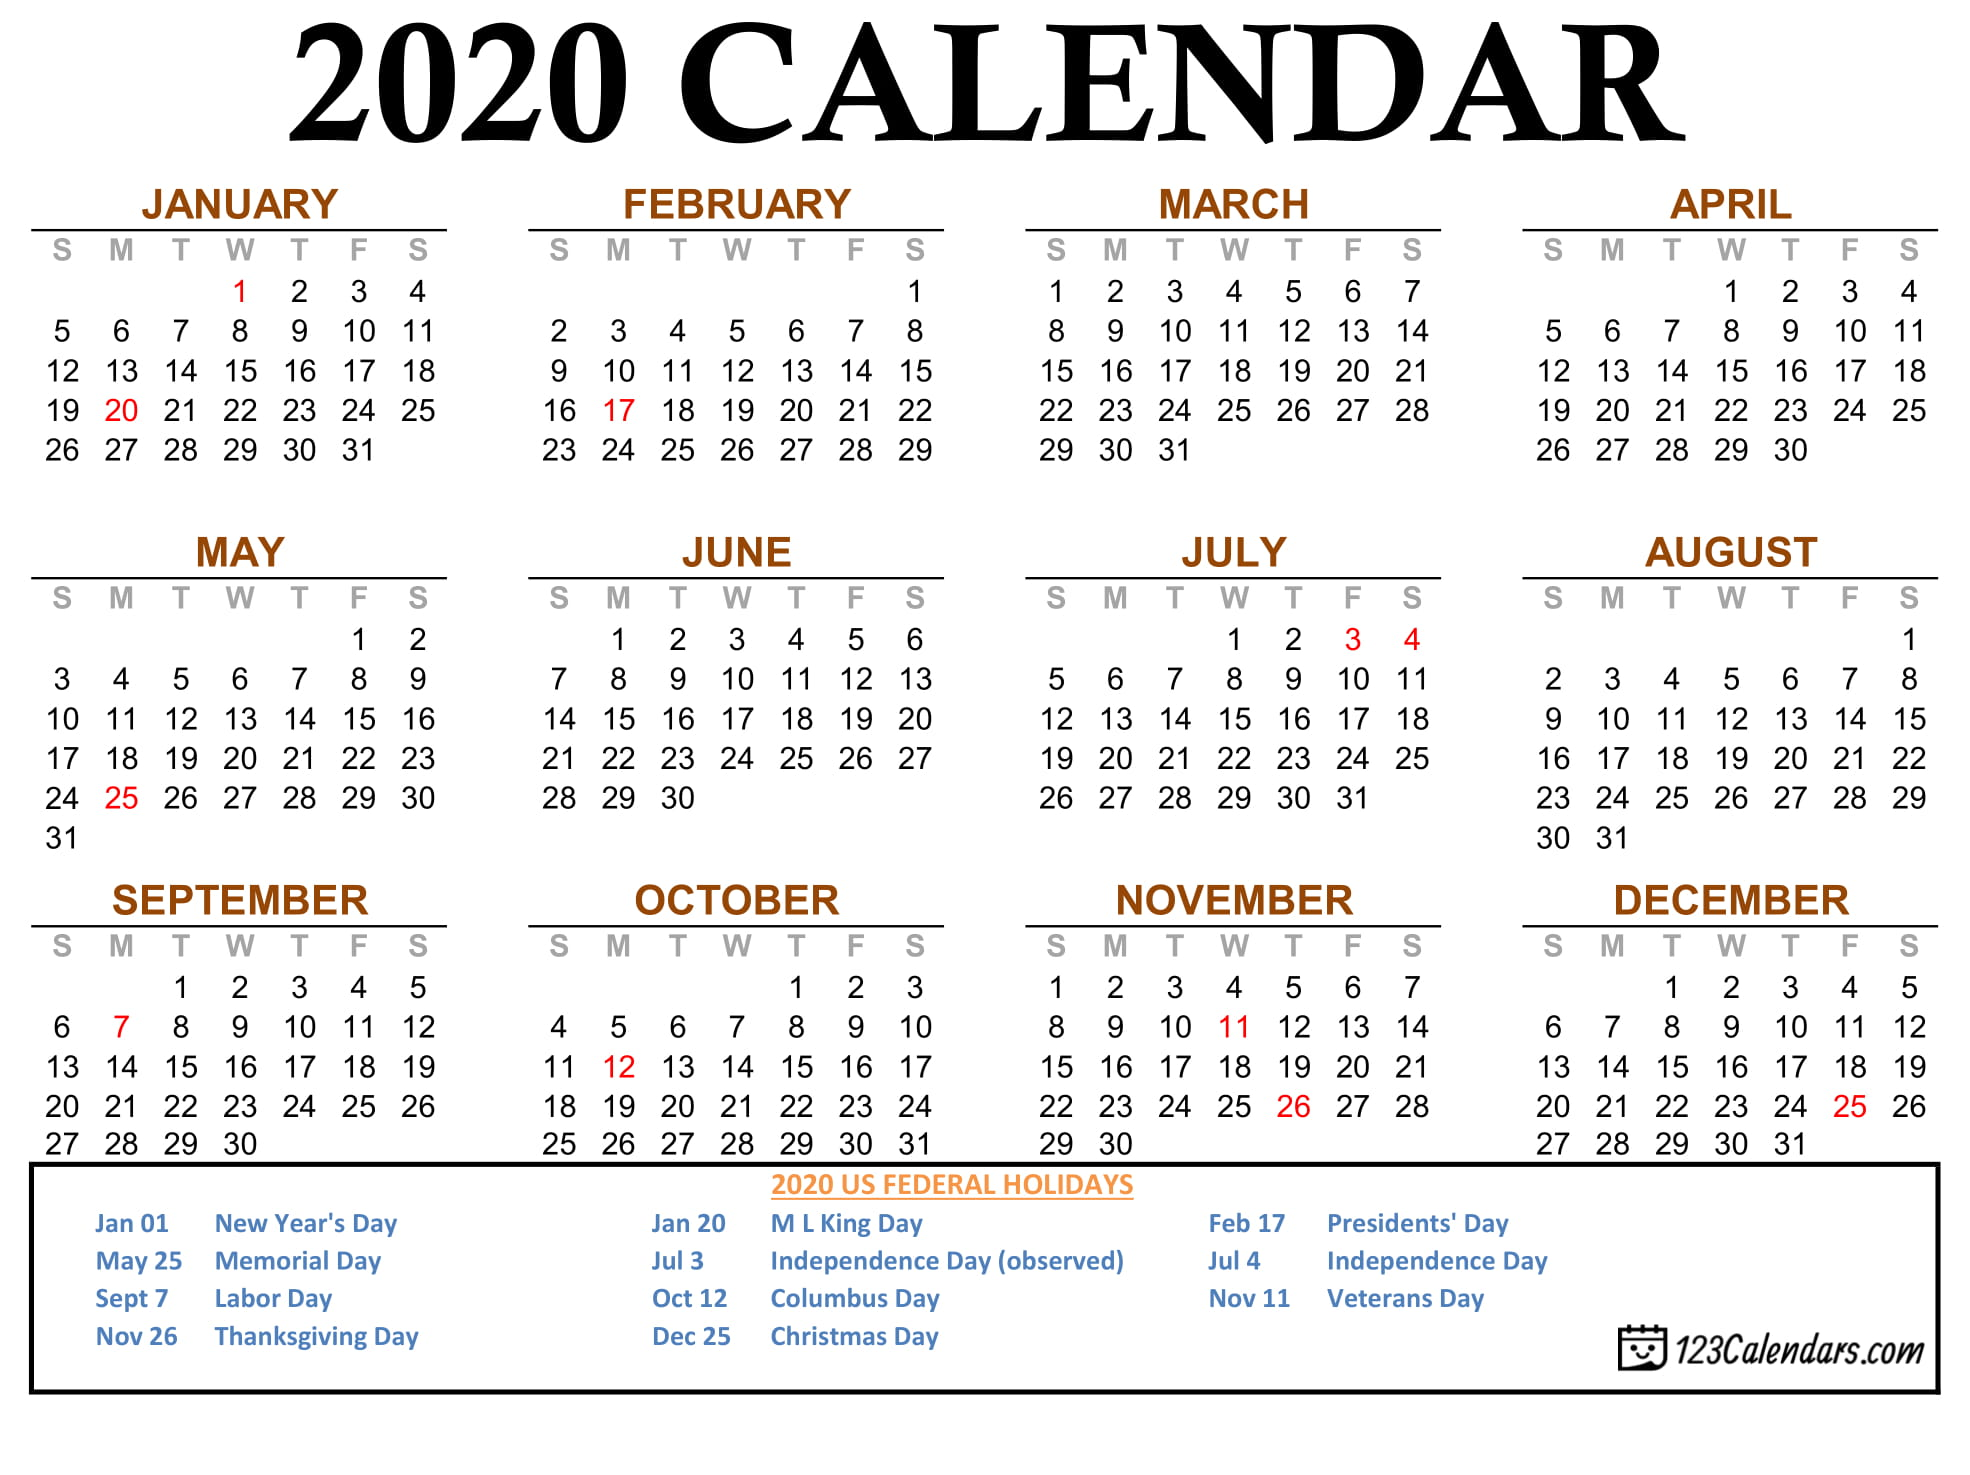 2020 2020 Academic Calendar Template.Calendar 2020 April May Academic Calendar Uk Acs International